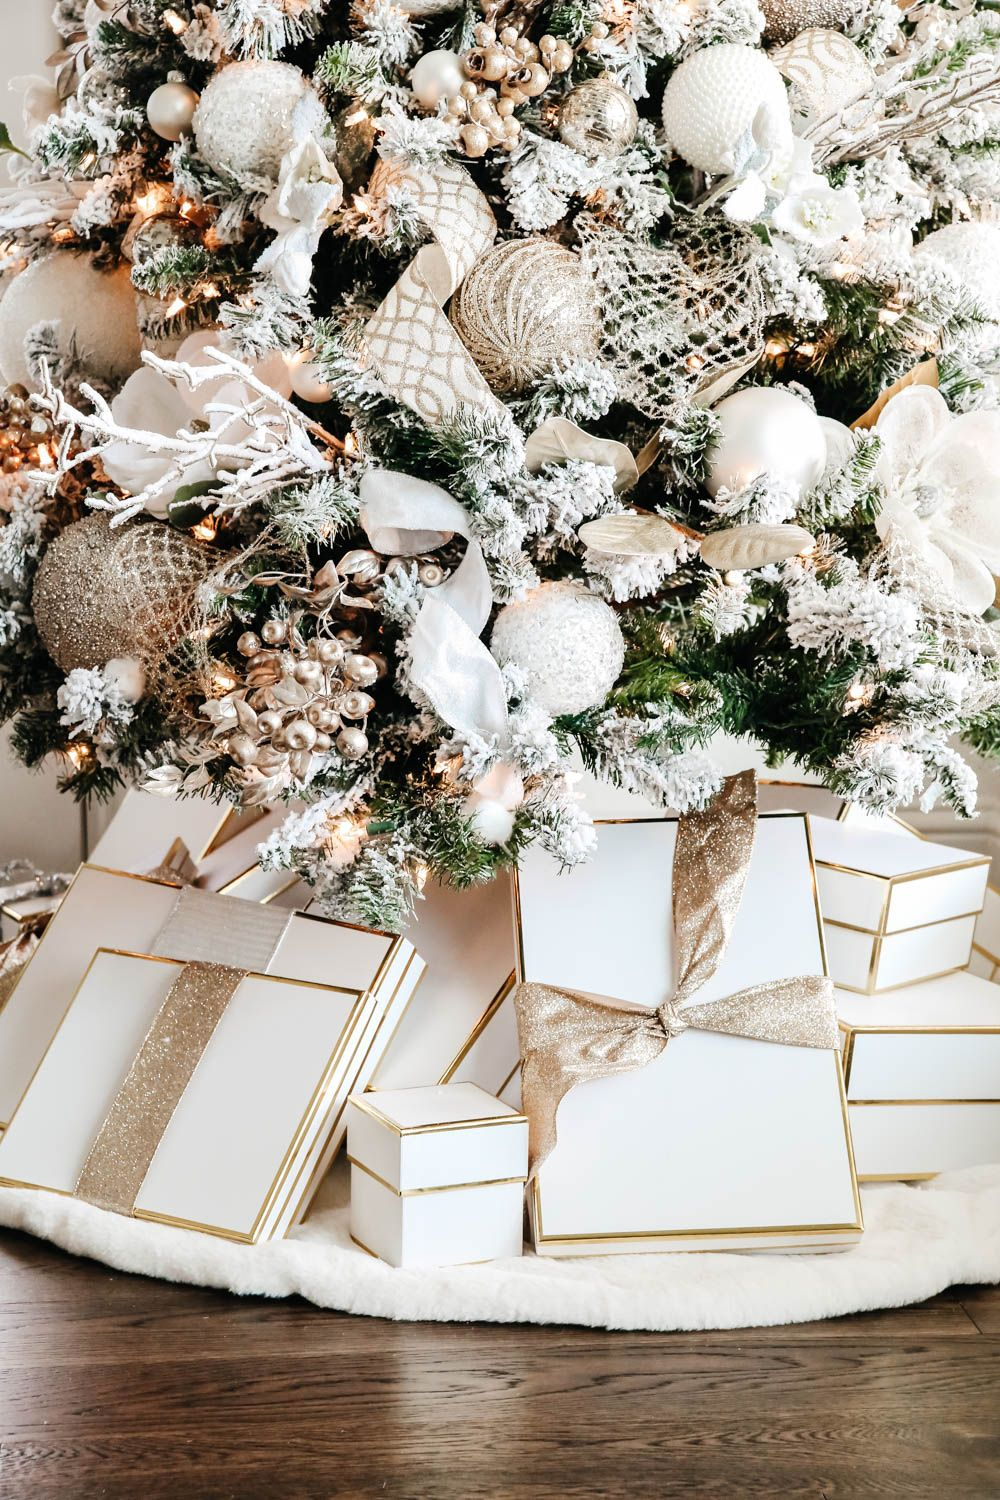 Classic neutral Christmas tree decorating ideas. #ABlissfulNest #Christmastree #Christmasdecorating